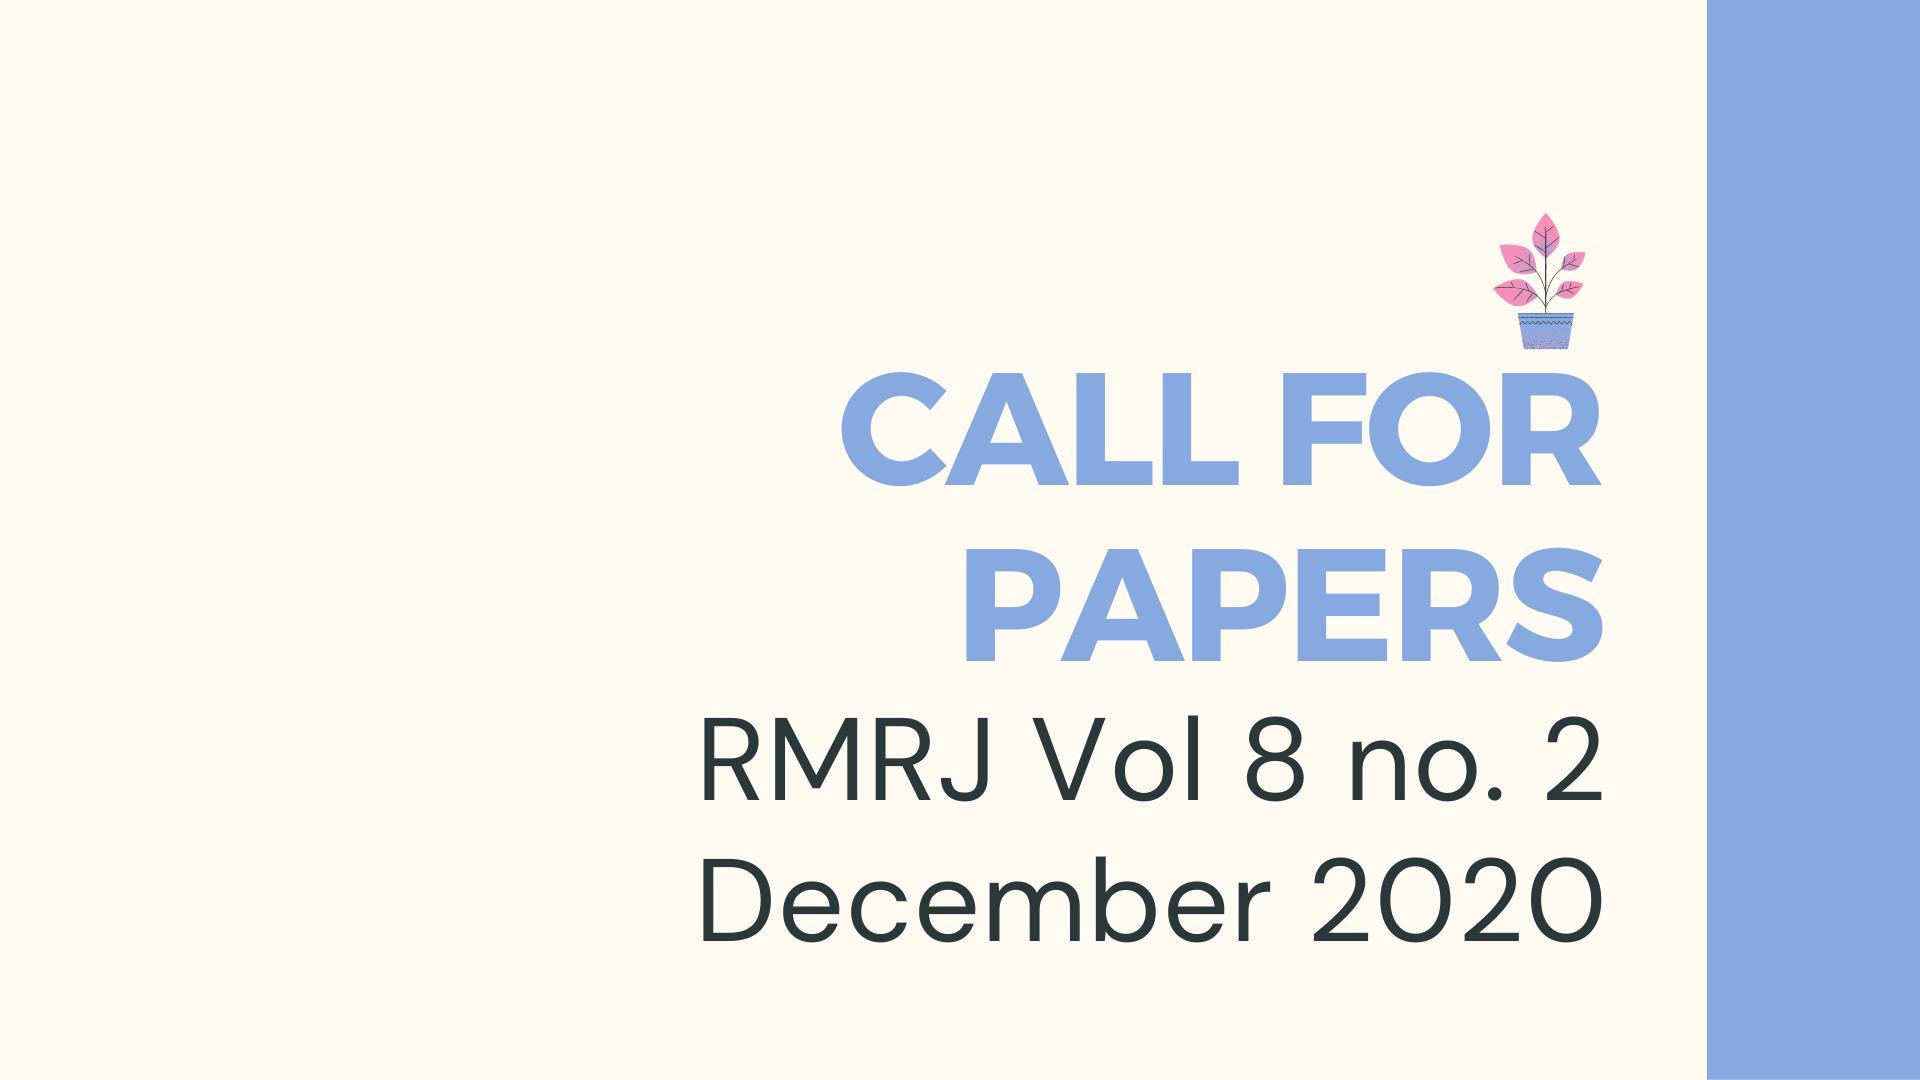 banner_CALL_FOR_PAPERS_rmrj_VOL._8_NO_._